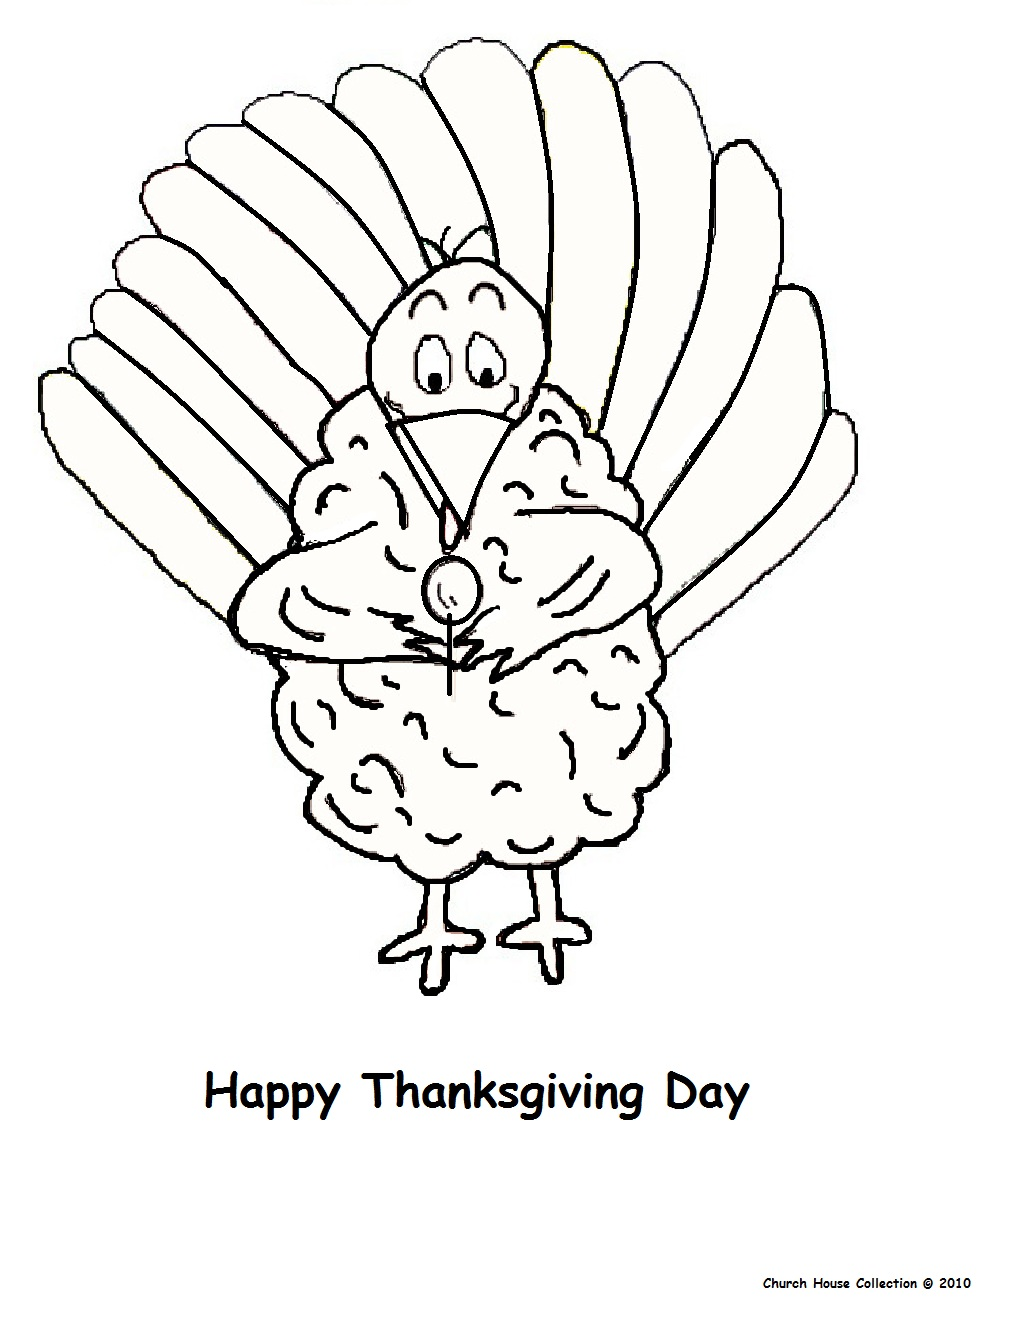 church thanksgiving coloring pages - photo#33